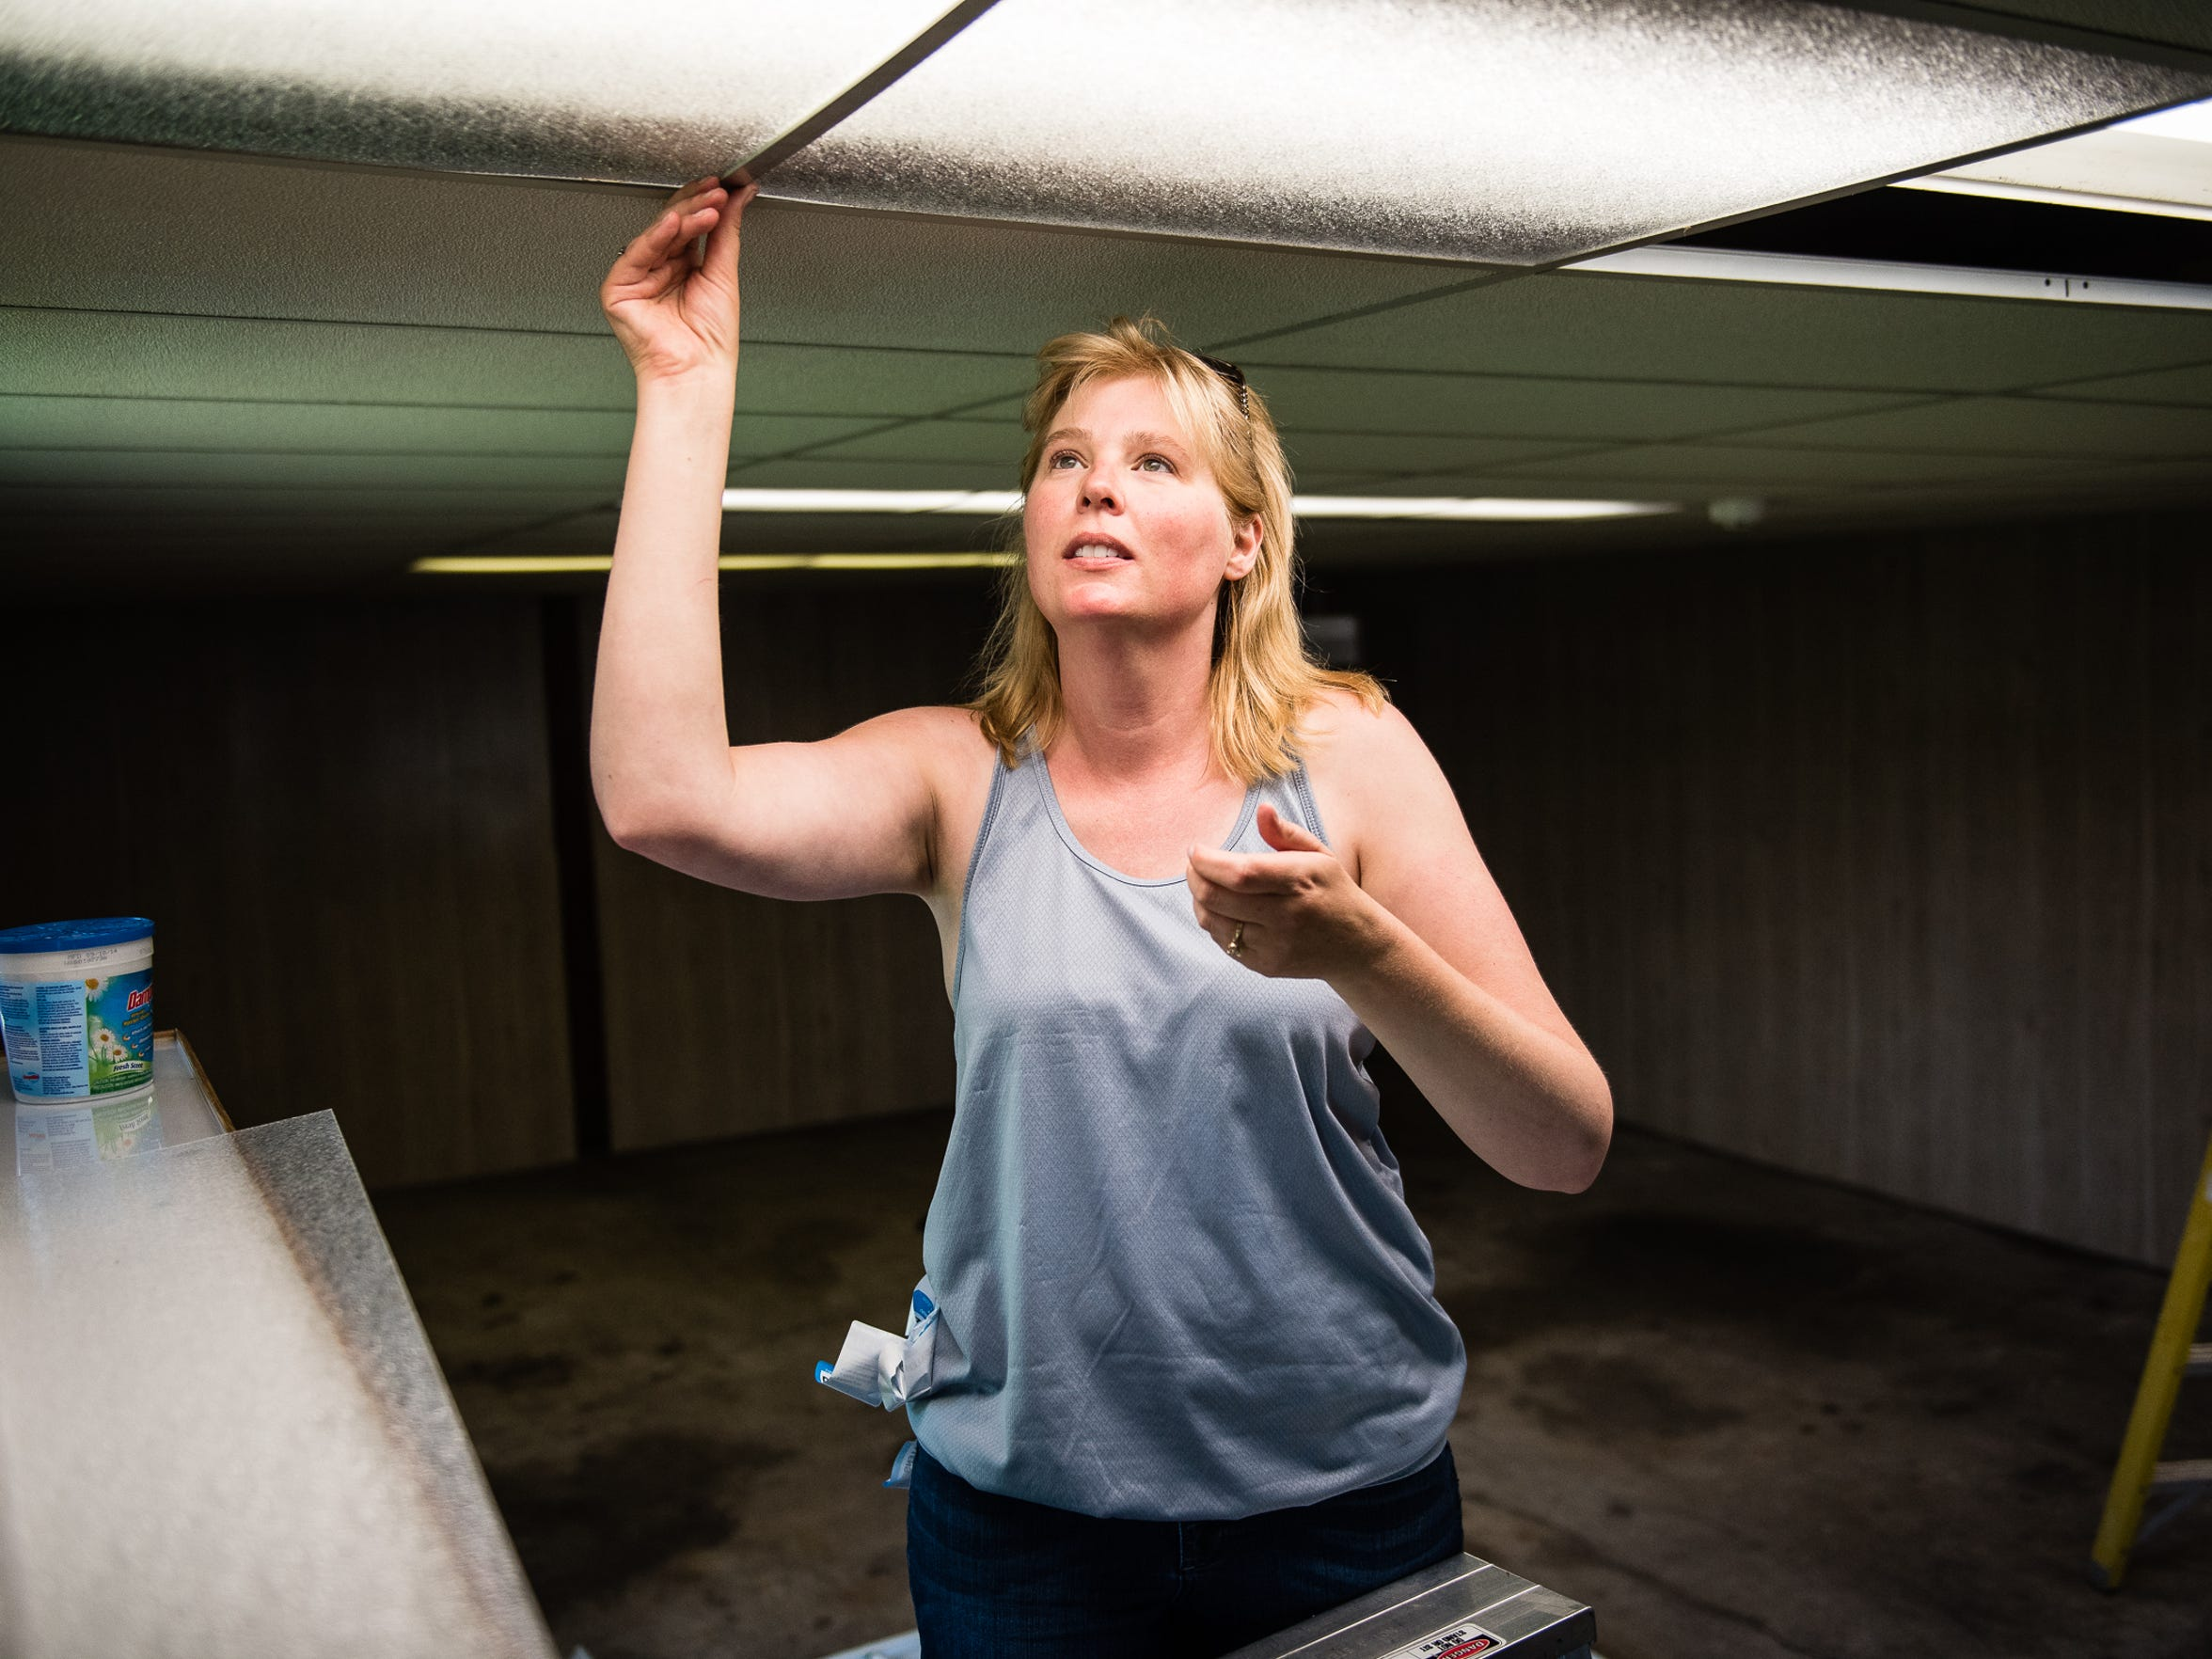 Kirsten Schaub of Hanover works on ceiling light fixtures at a warehouse in Hanover that will be used as the headquarters for Love LIVES, a non-profit that aims to help victims of domestic violence.